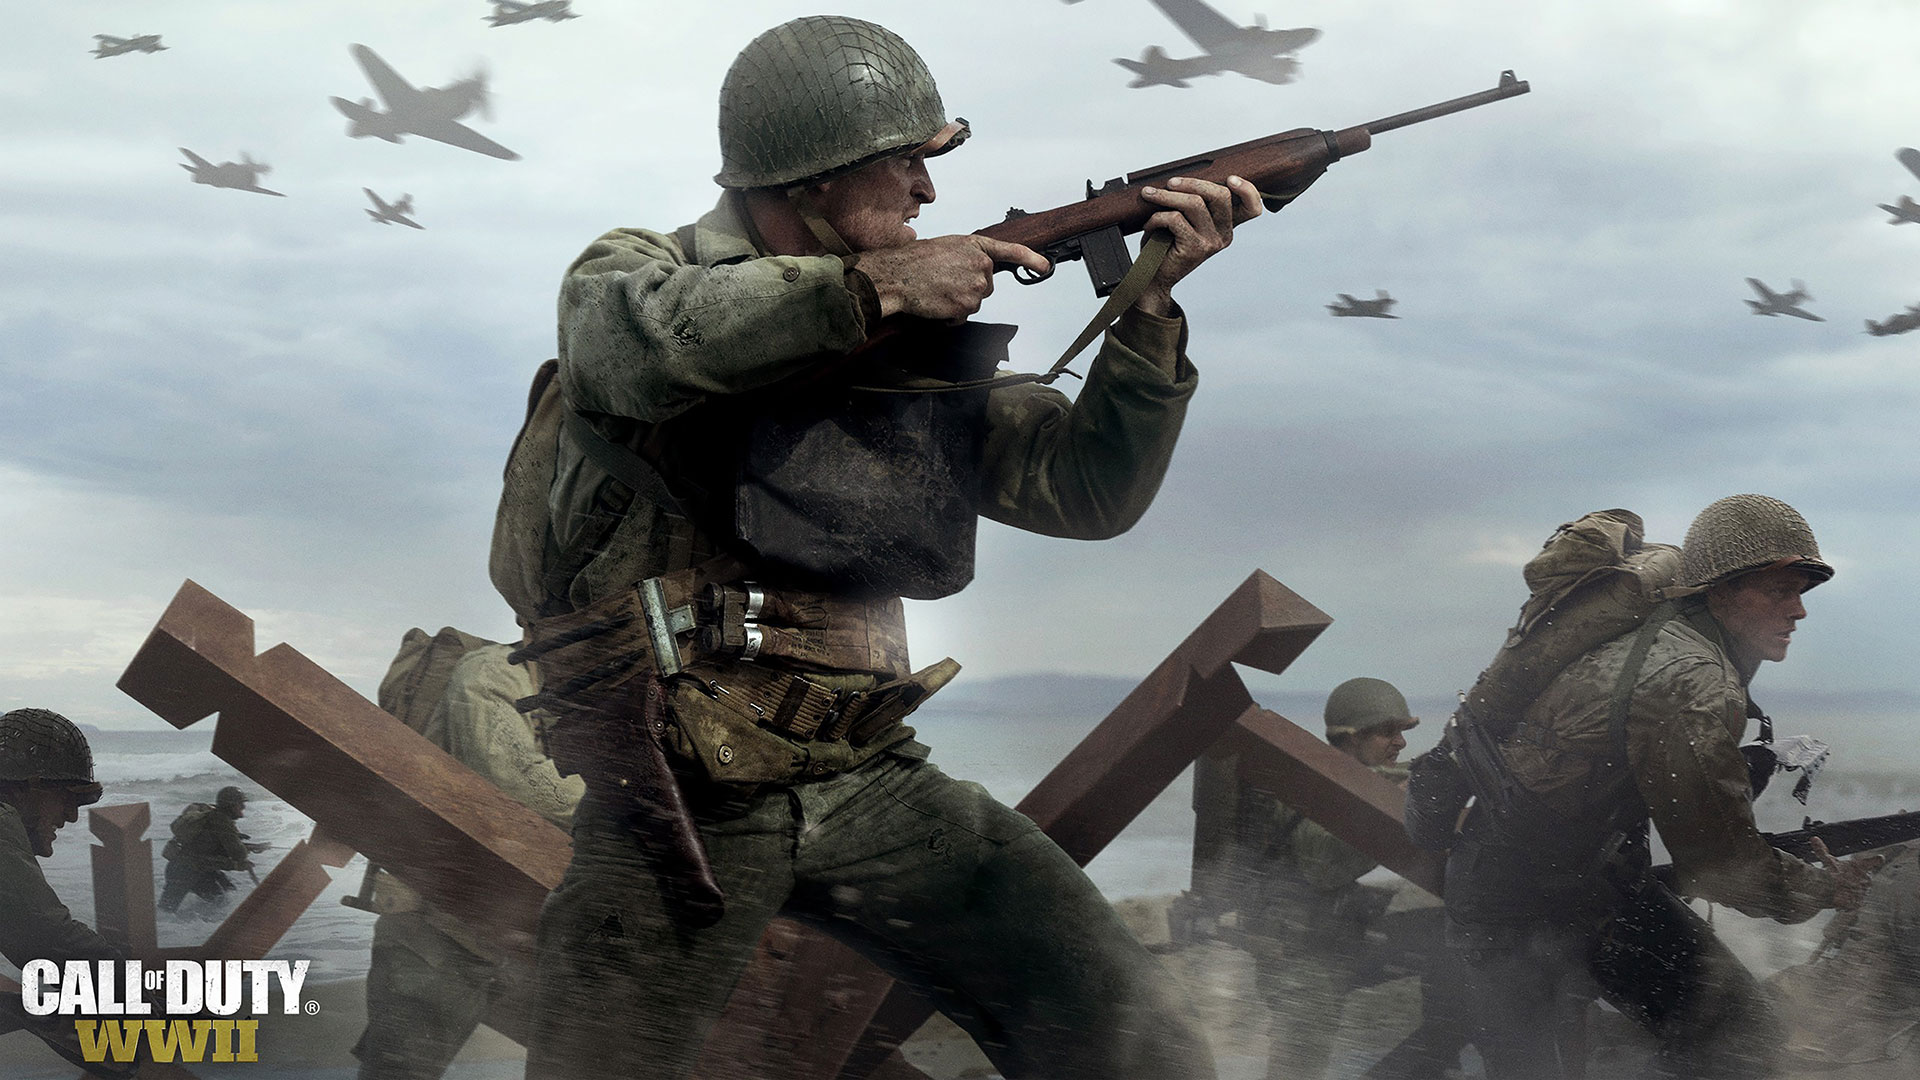 Call of Duty: WWII Sales Double Infinite Warfare's in First Three Days